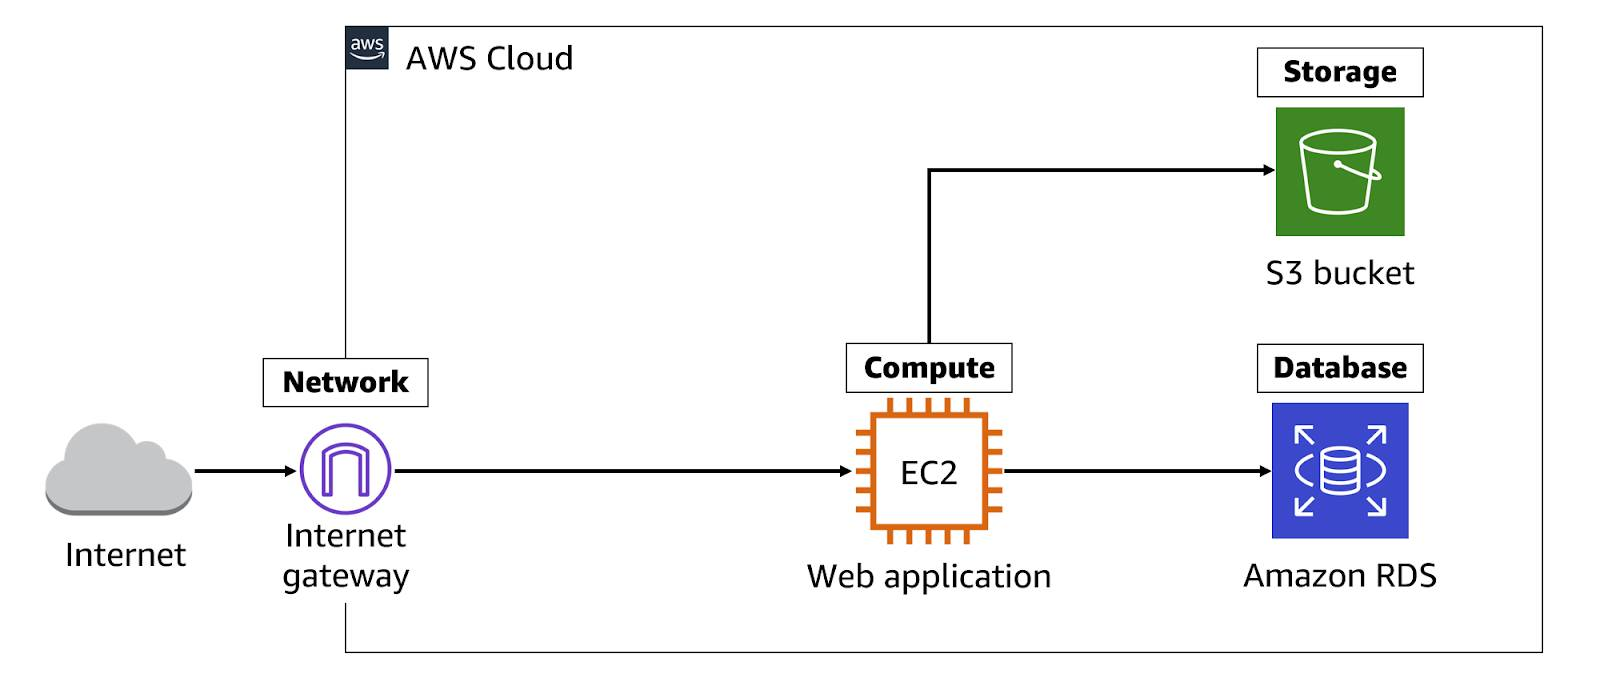 An architecture diagram showing the Internet pointing to an Internet gateway network service in the AWS Cloud, connecting to an Elastic Compute Cloud web application, which is pointing to a Simple Storage Service bucket containing static content and an Amazon Relational Database Service.